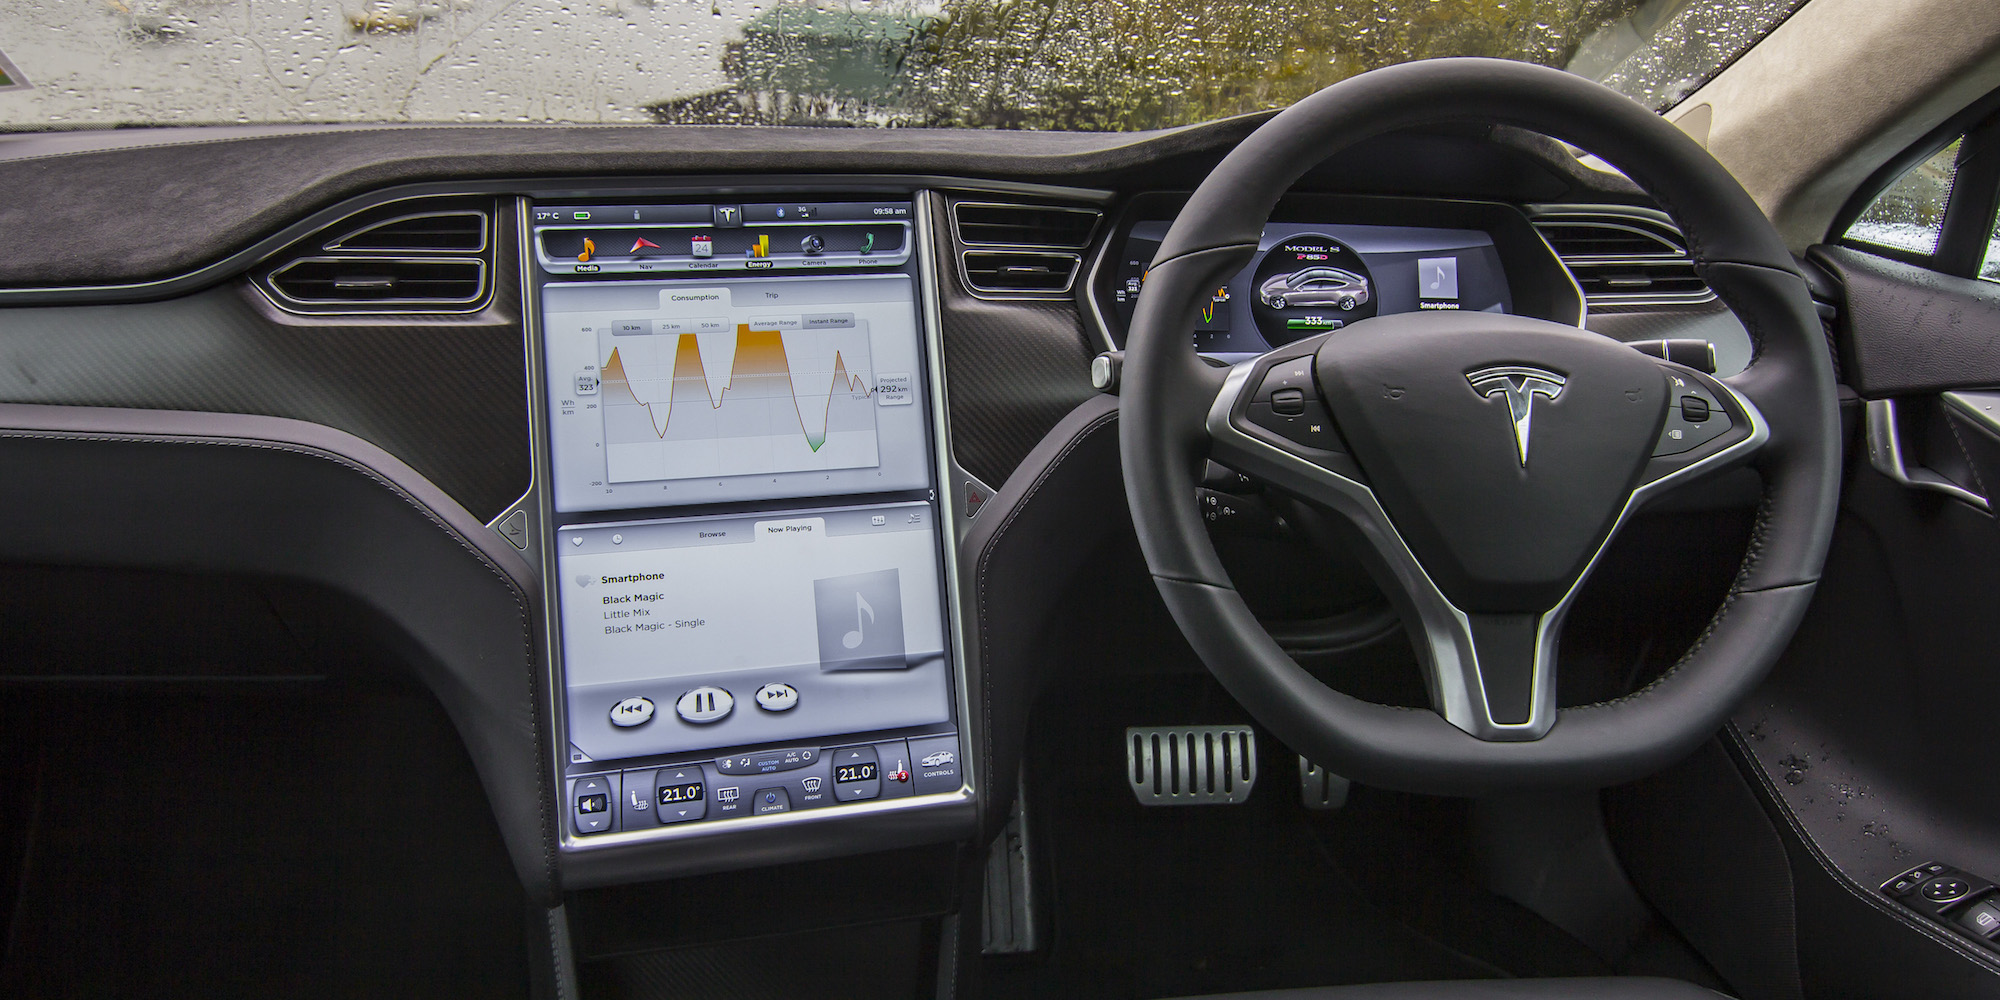 Head Unit and Steering Tesla Model S P85D 2015